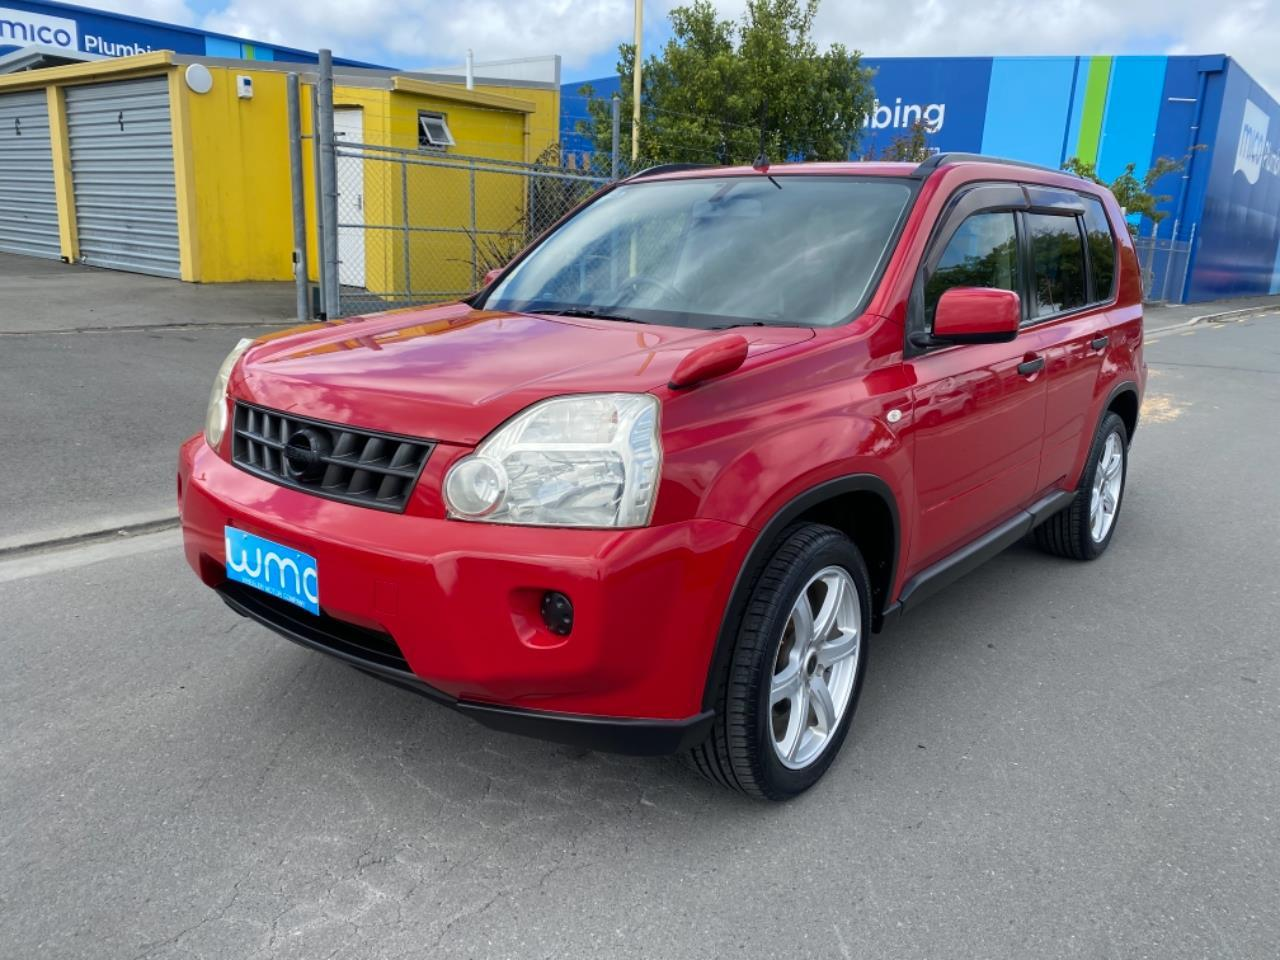 image-2, 2007 Nissan X-TRAIL 20S 4WD at Christchurch